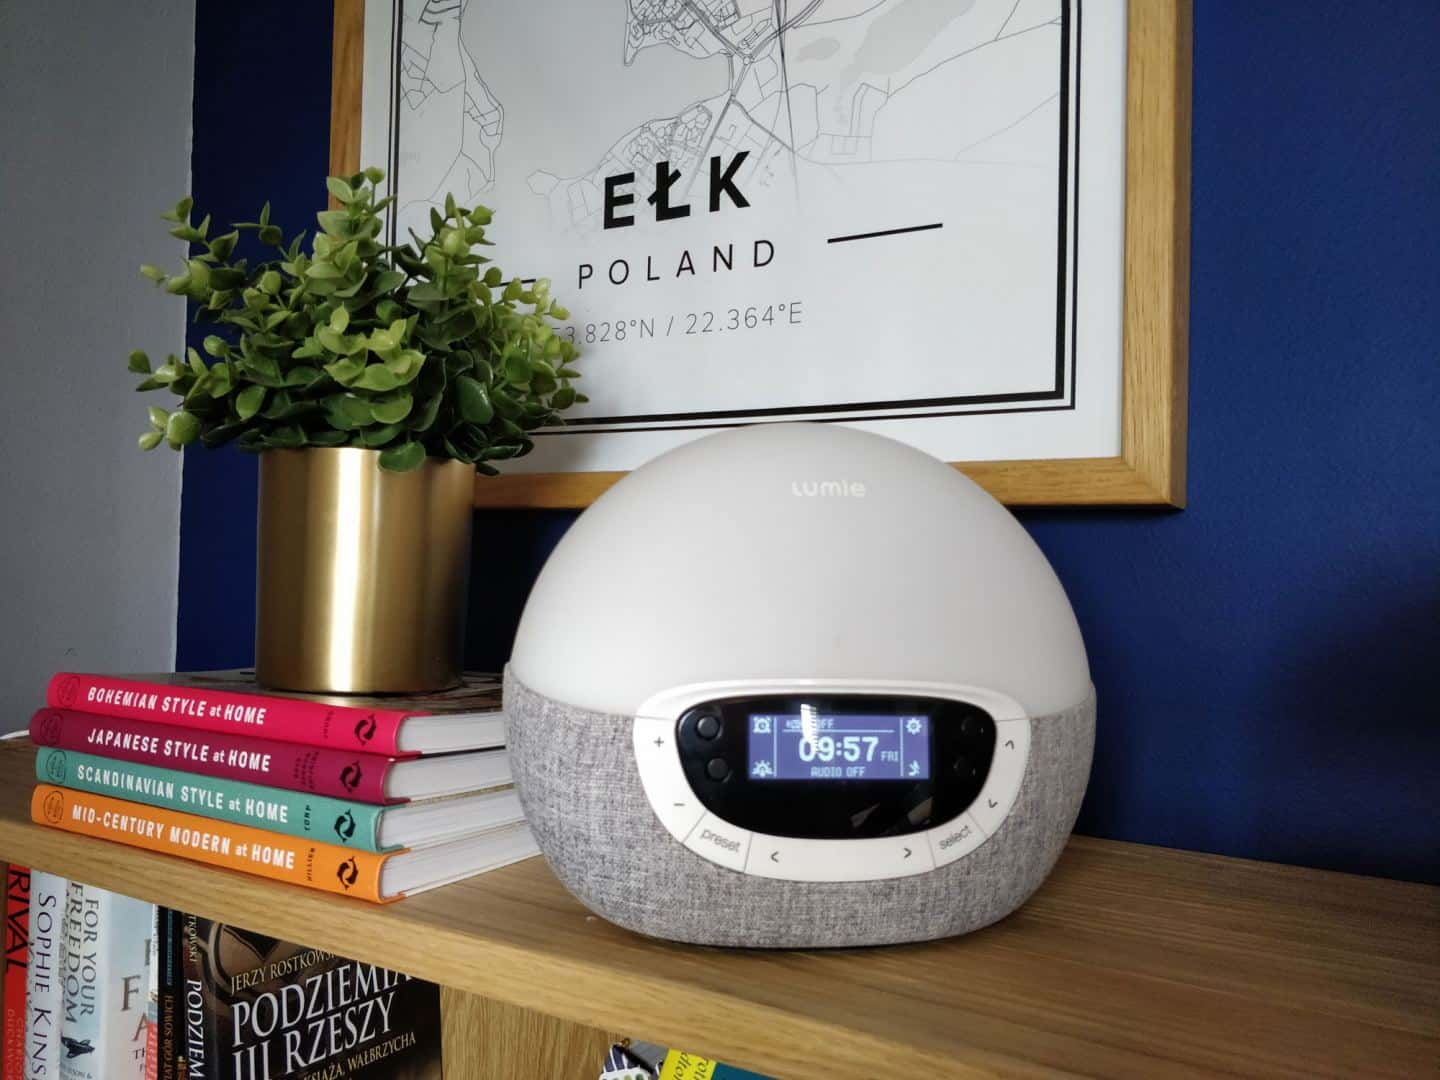 World Sleep Day 2020-5 Ways to Improve your Sleep. A Lumie Wake-up light alarm clock on a shelf